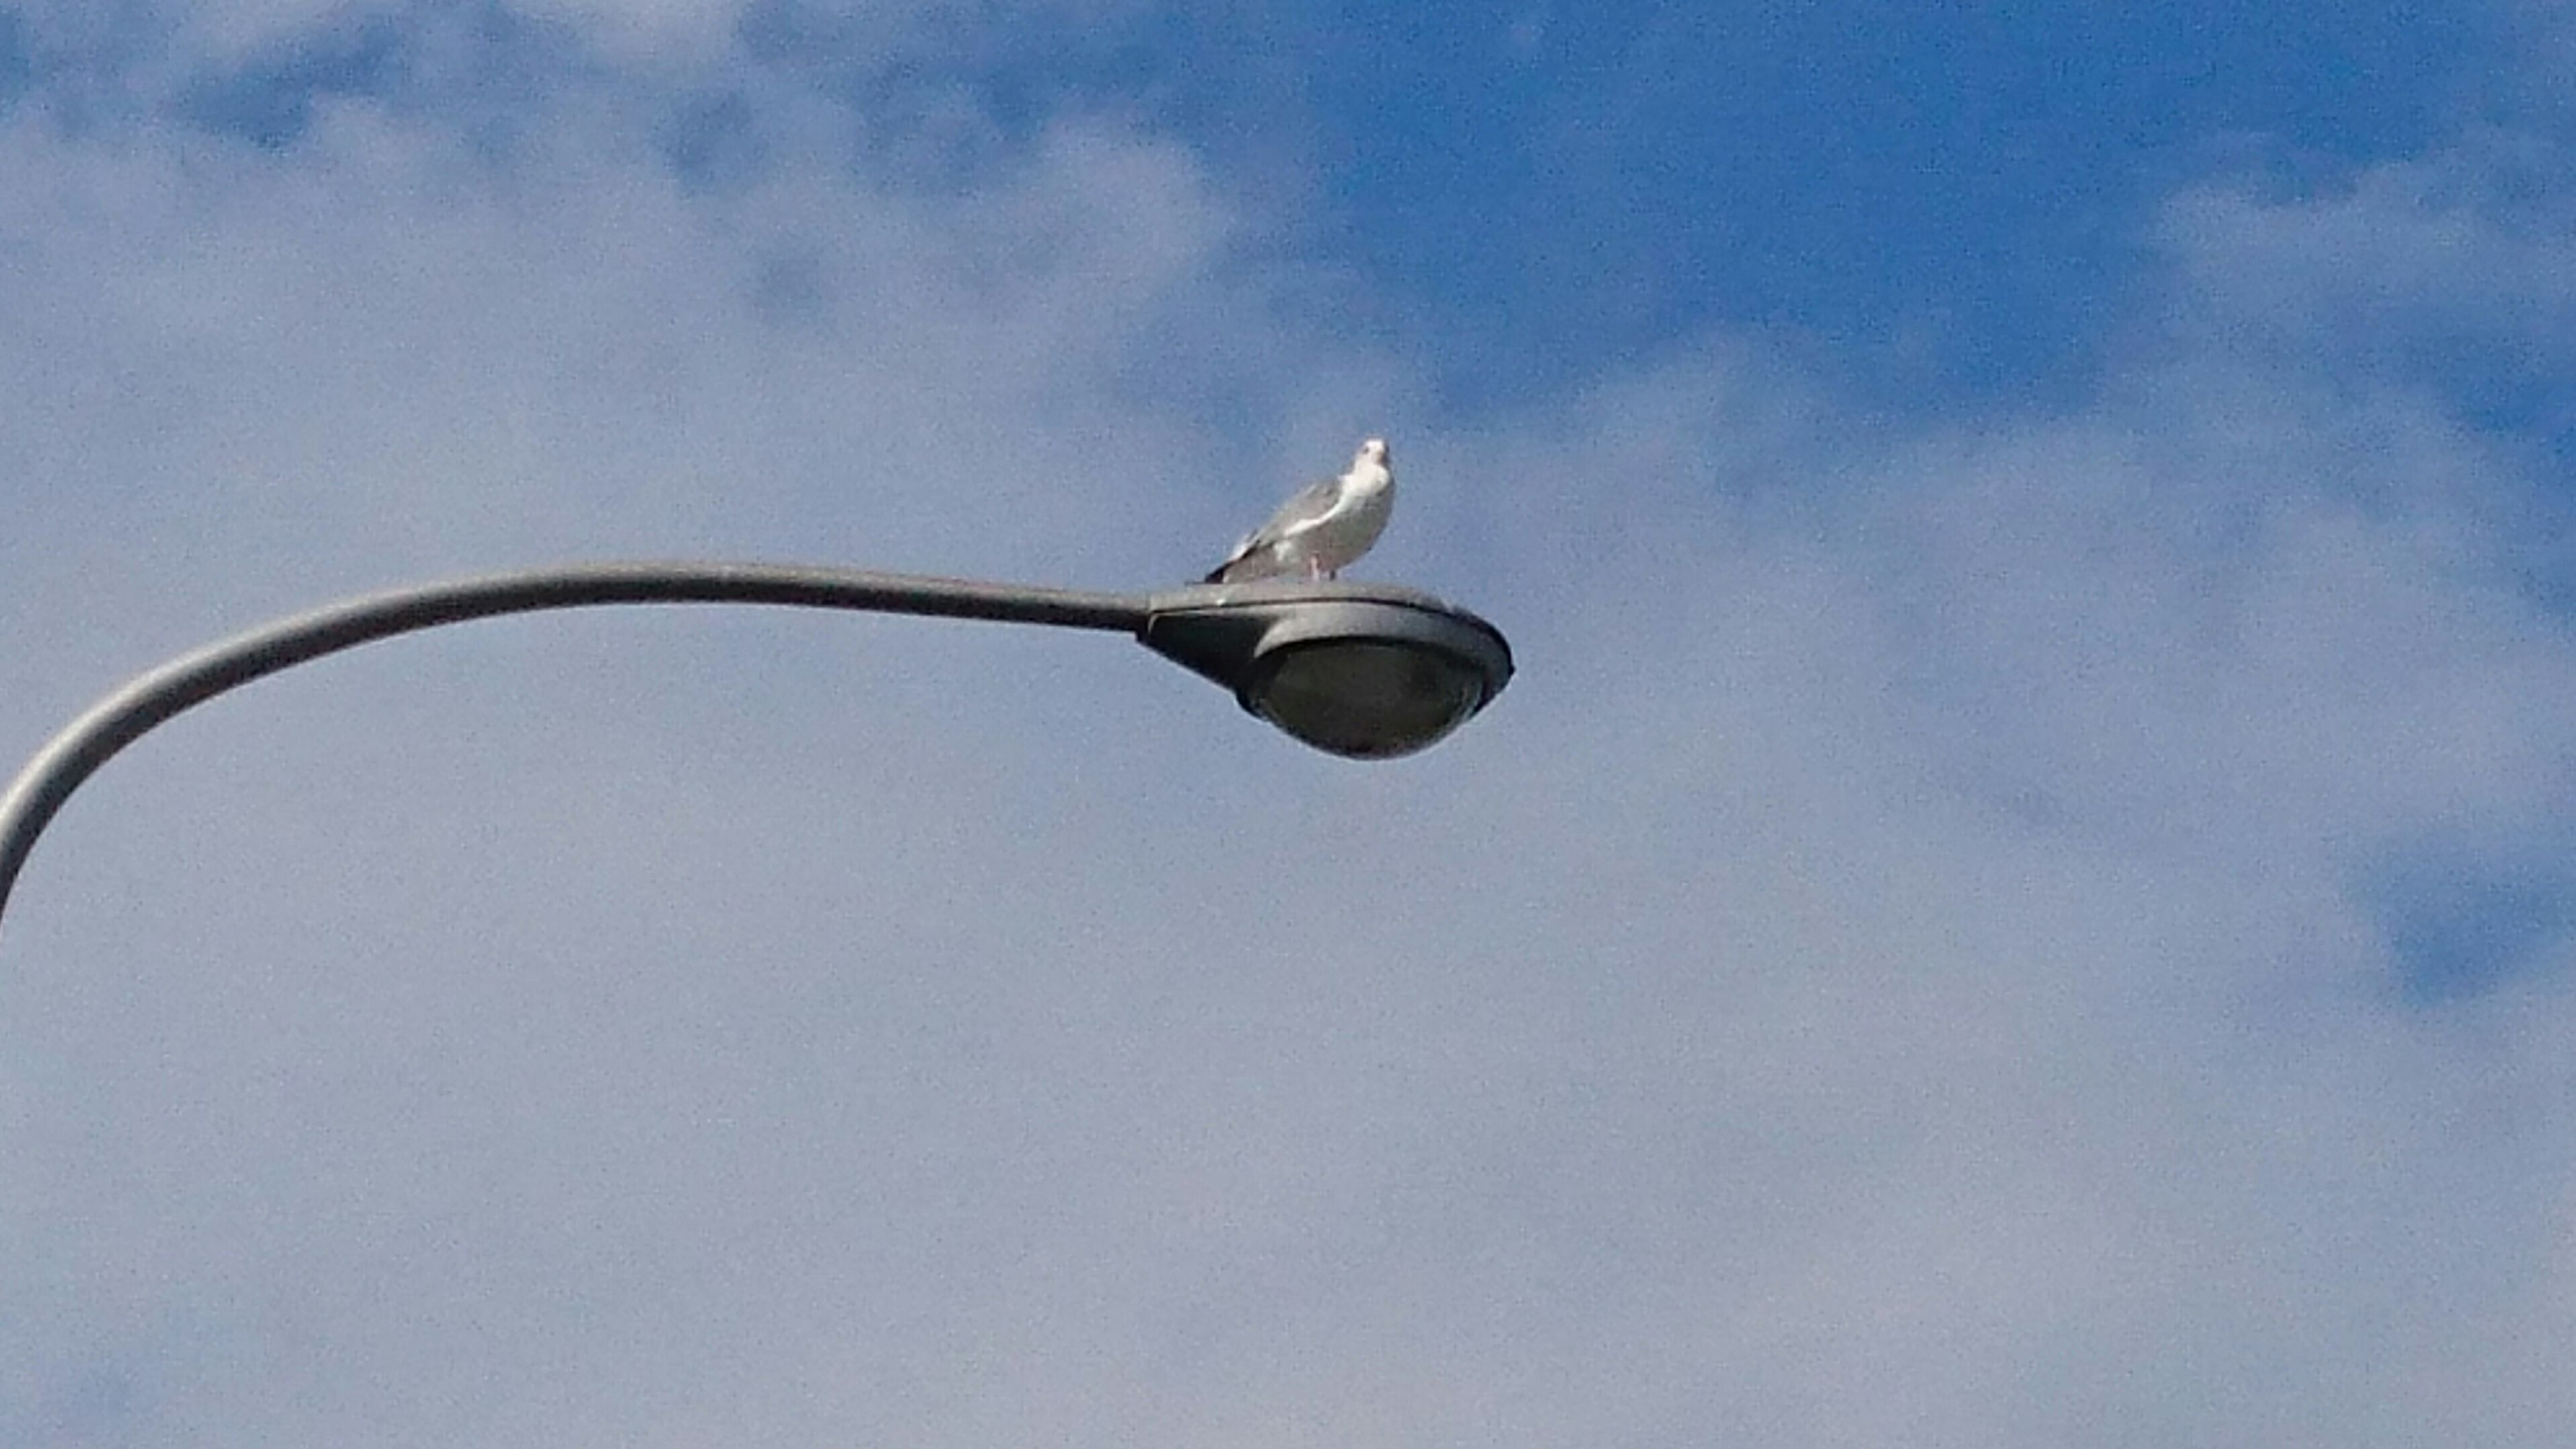 low angle view, animal themes, bird, sky, animals in the wild, one animal, wildlife, flying, mid-air, street light, cloud - sky, blue, cloud, nature, outdoors, lighting equipment, day, no people, perching, spread wings